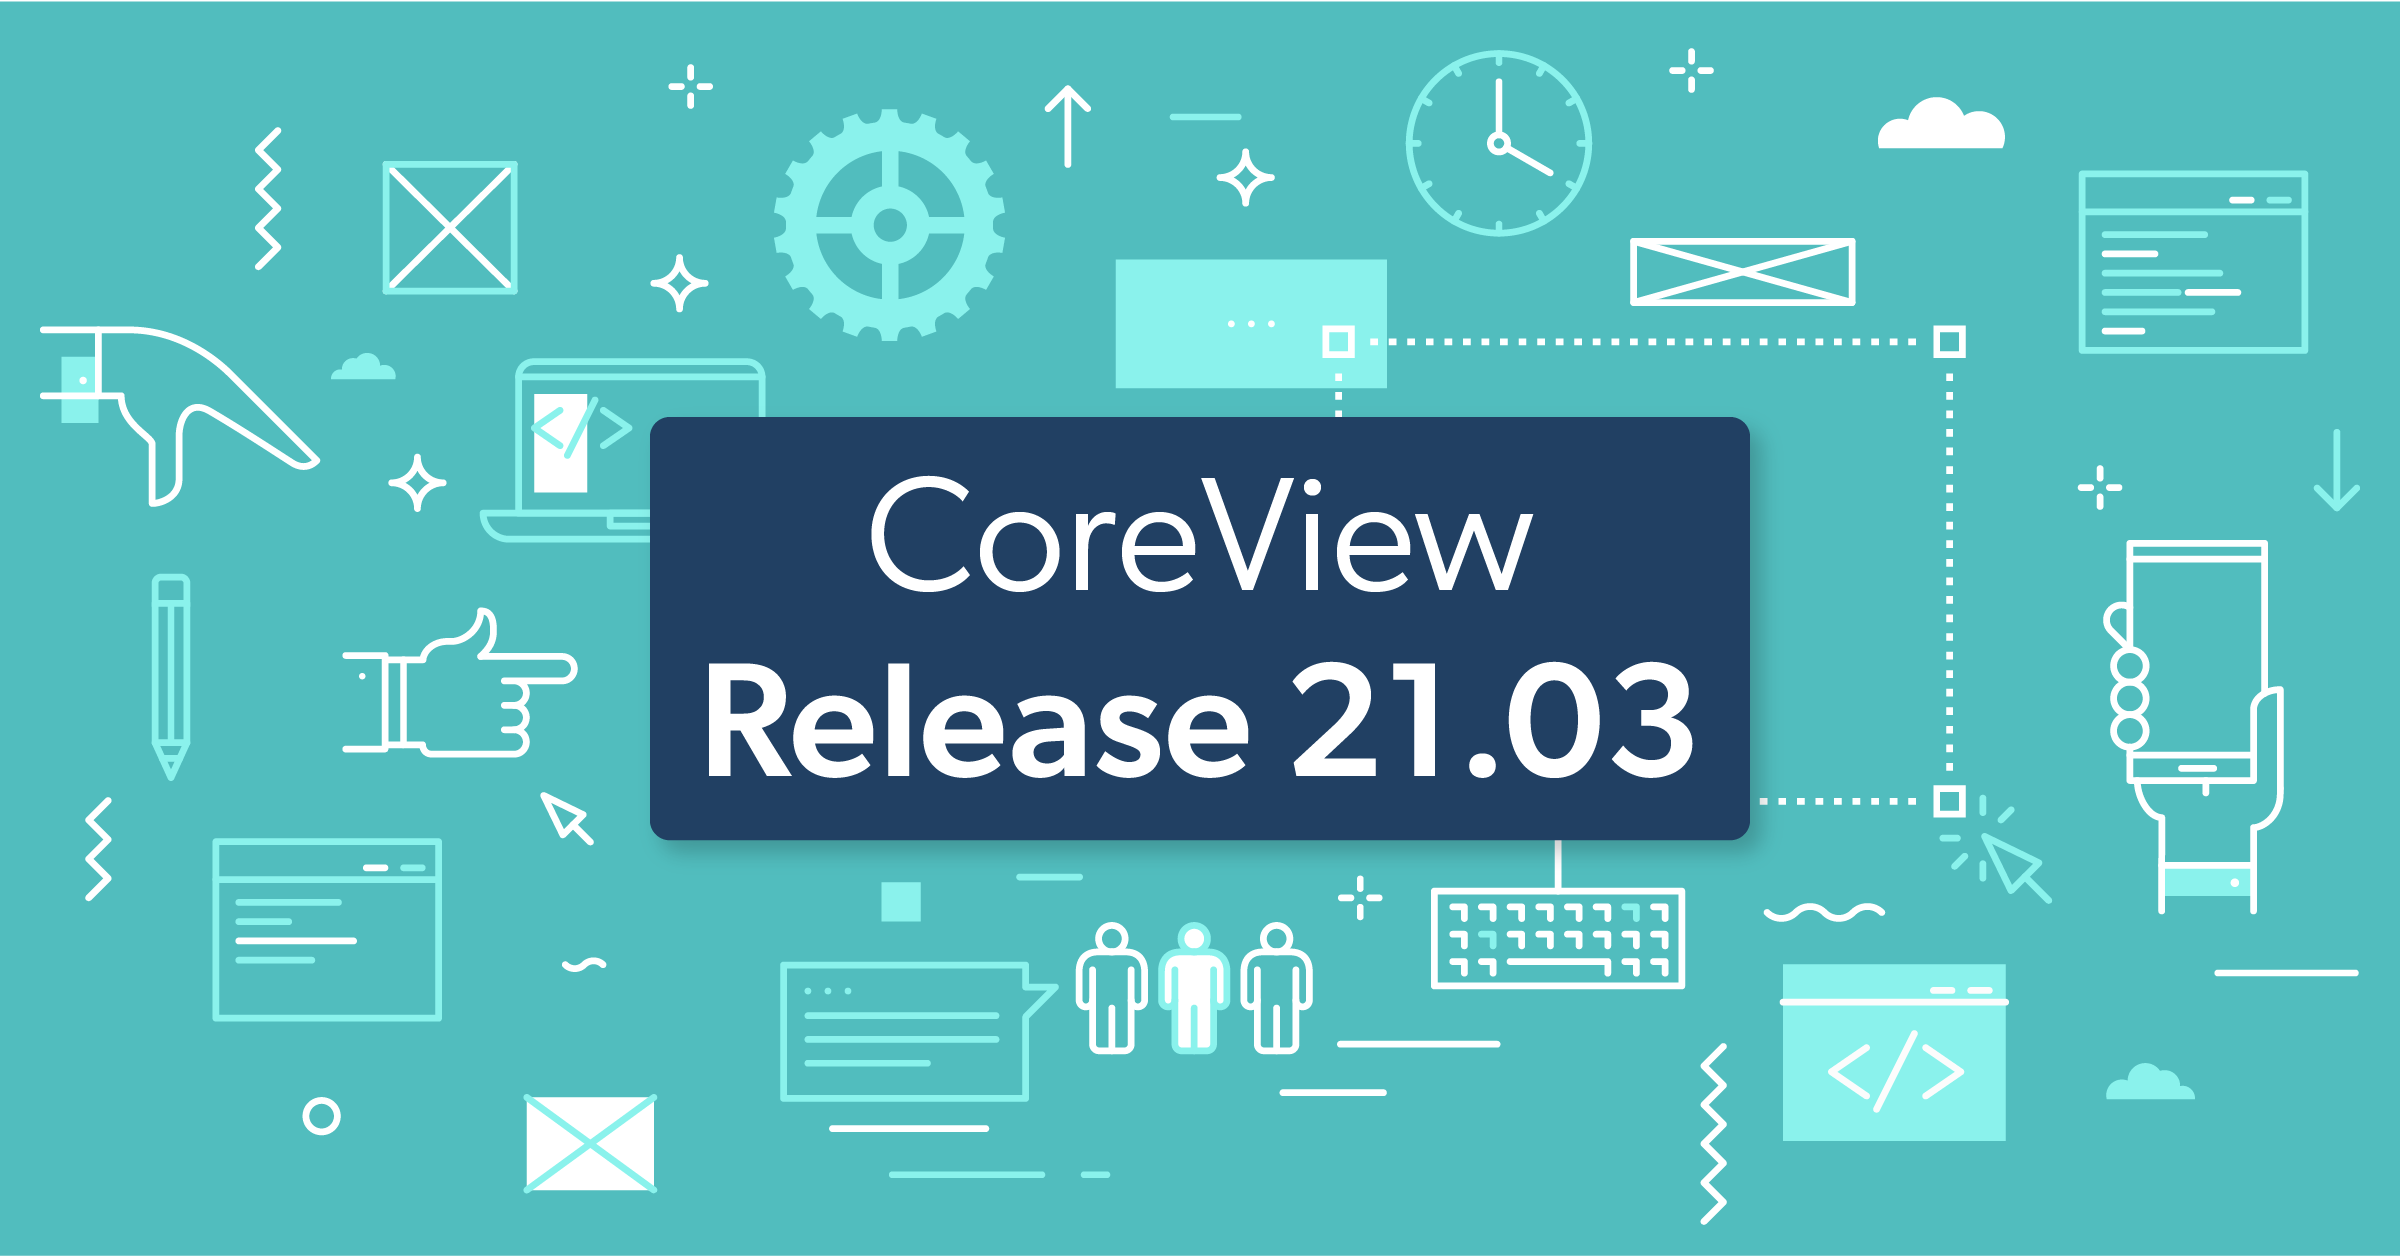 CoreView Release 21.03